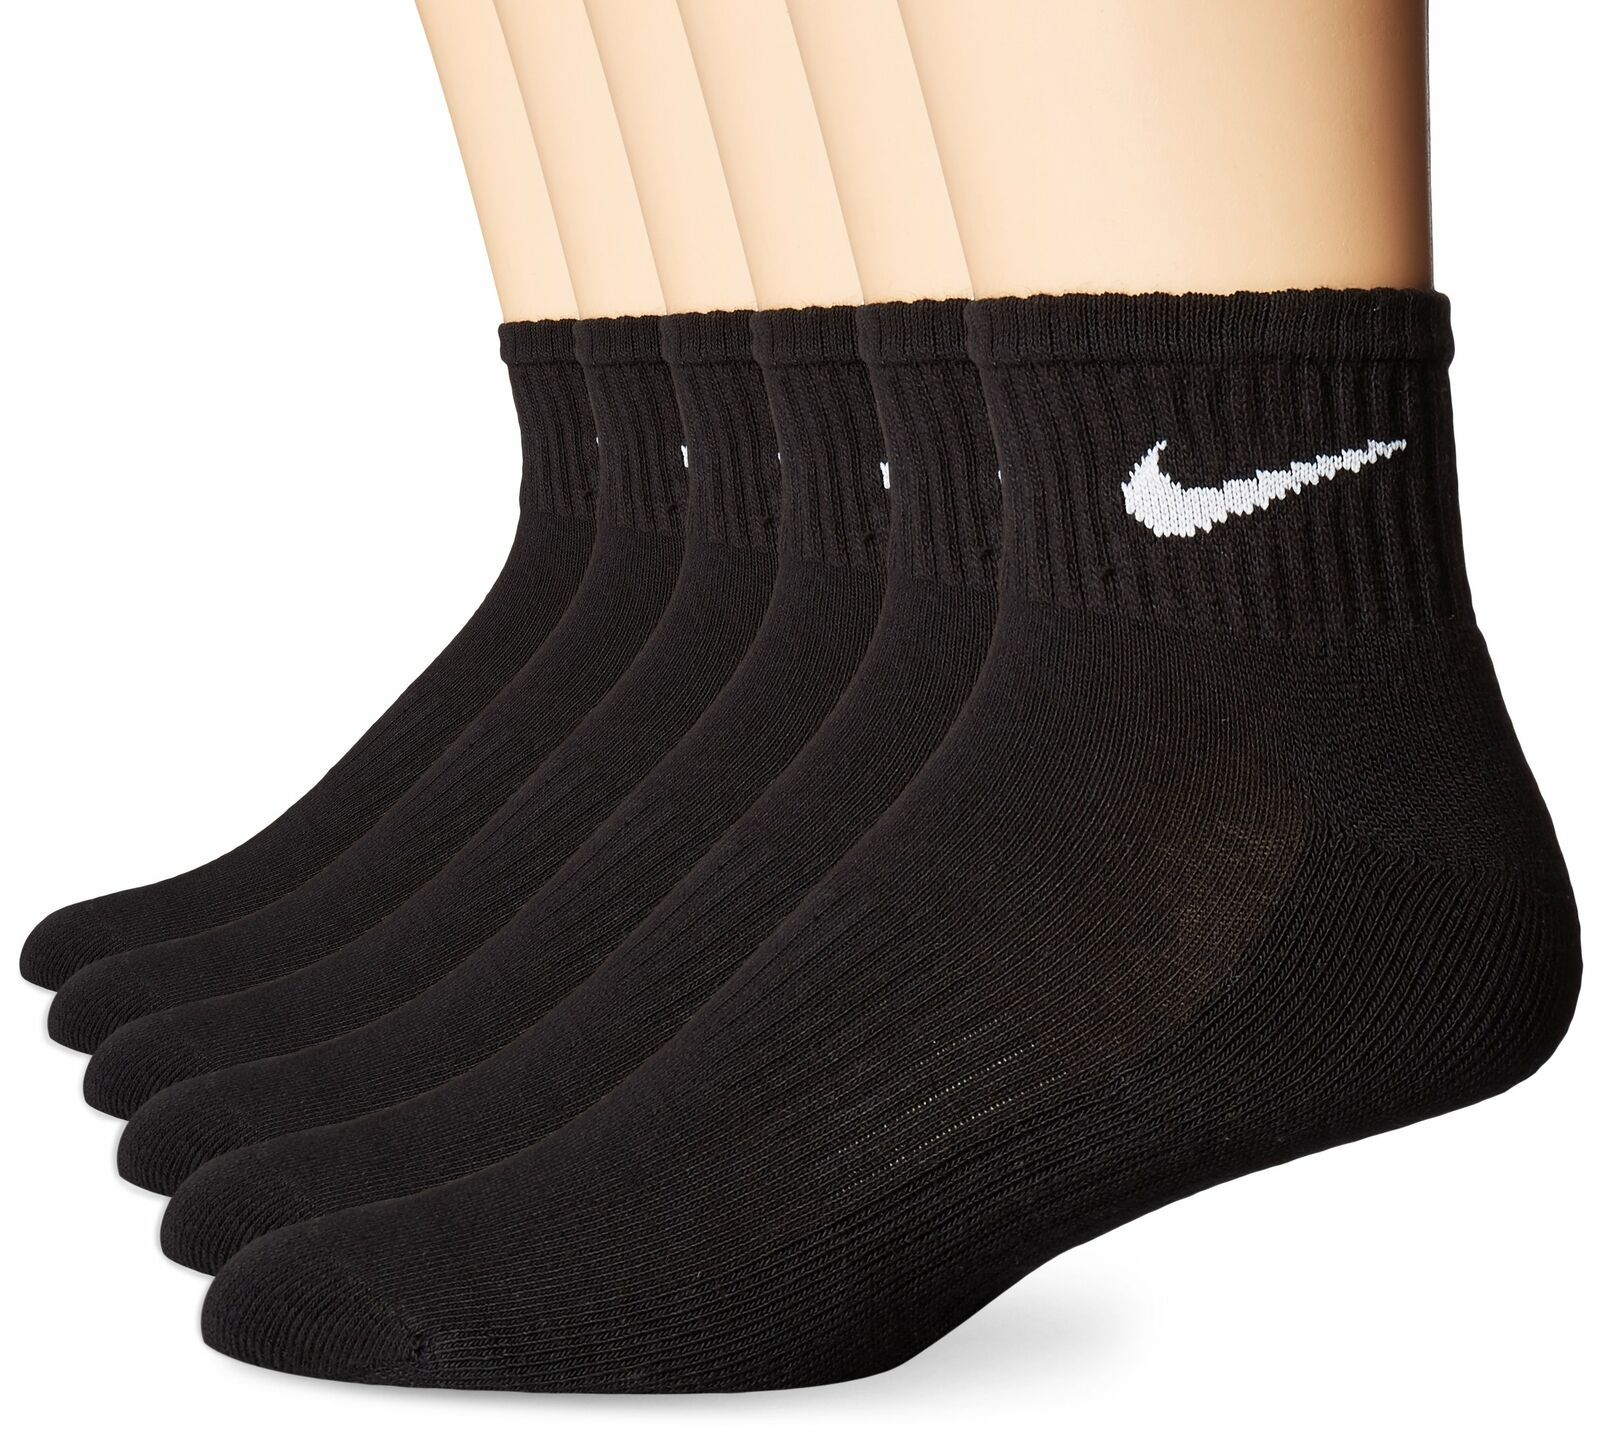 Primary image for NIKE Performance Cushion Quarter Socks with Bag (6 Pairs) Medium Black/White